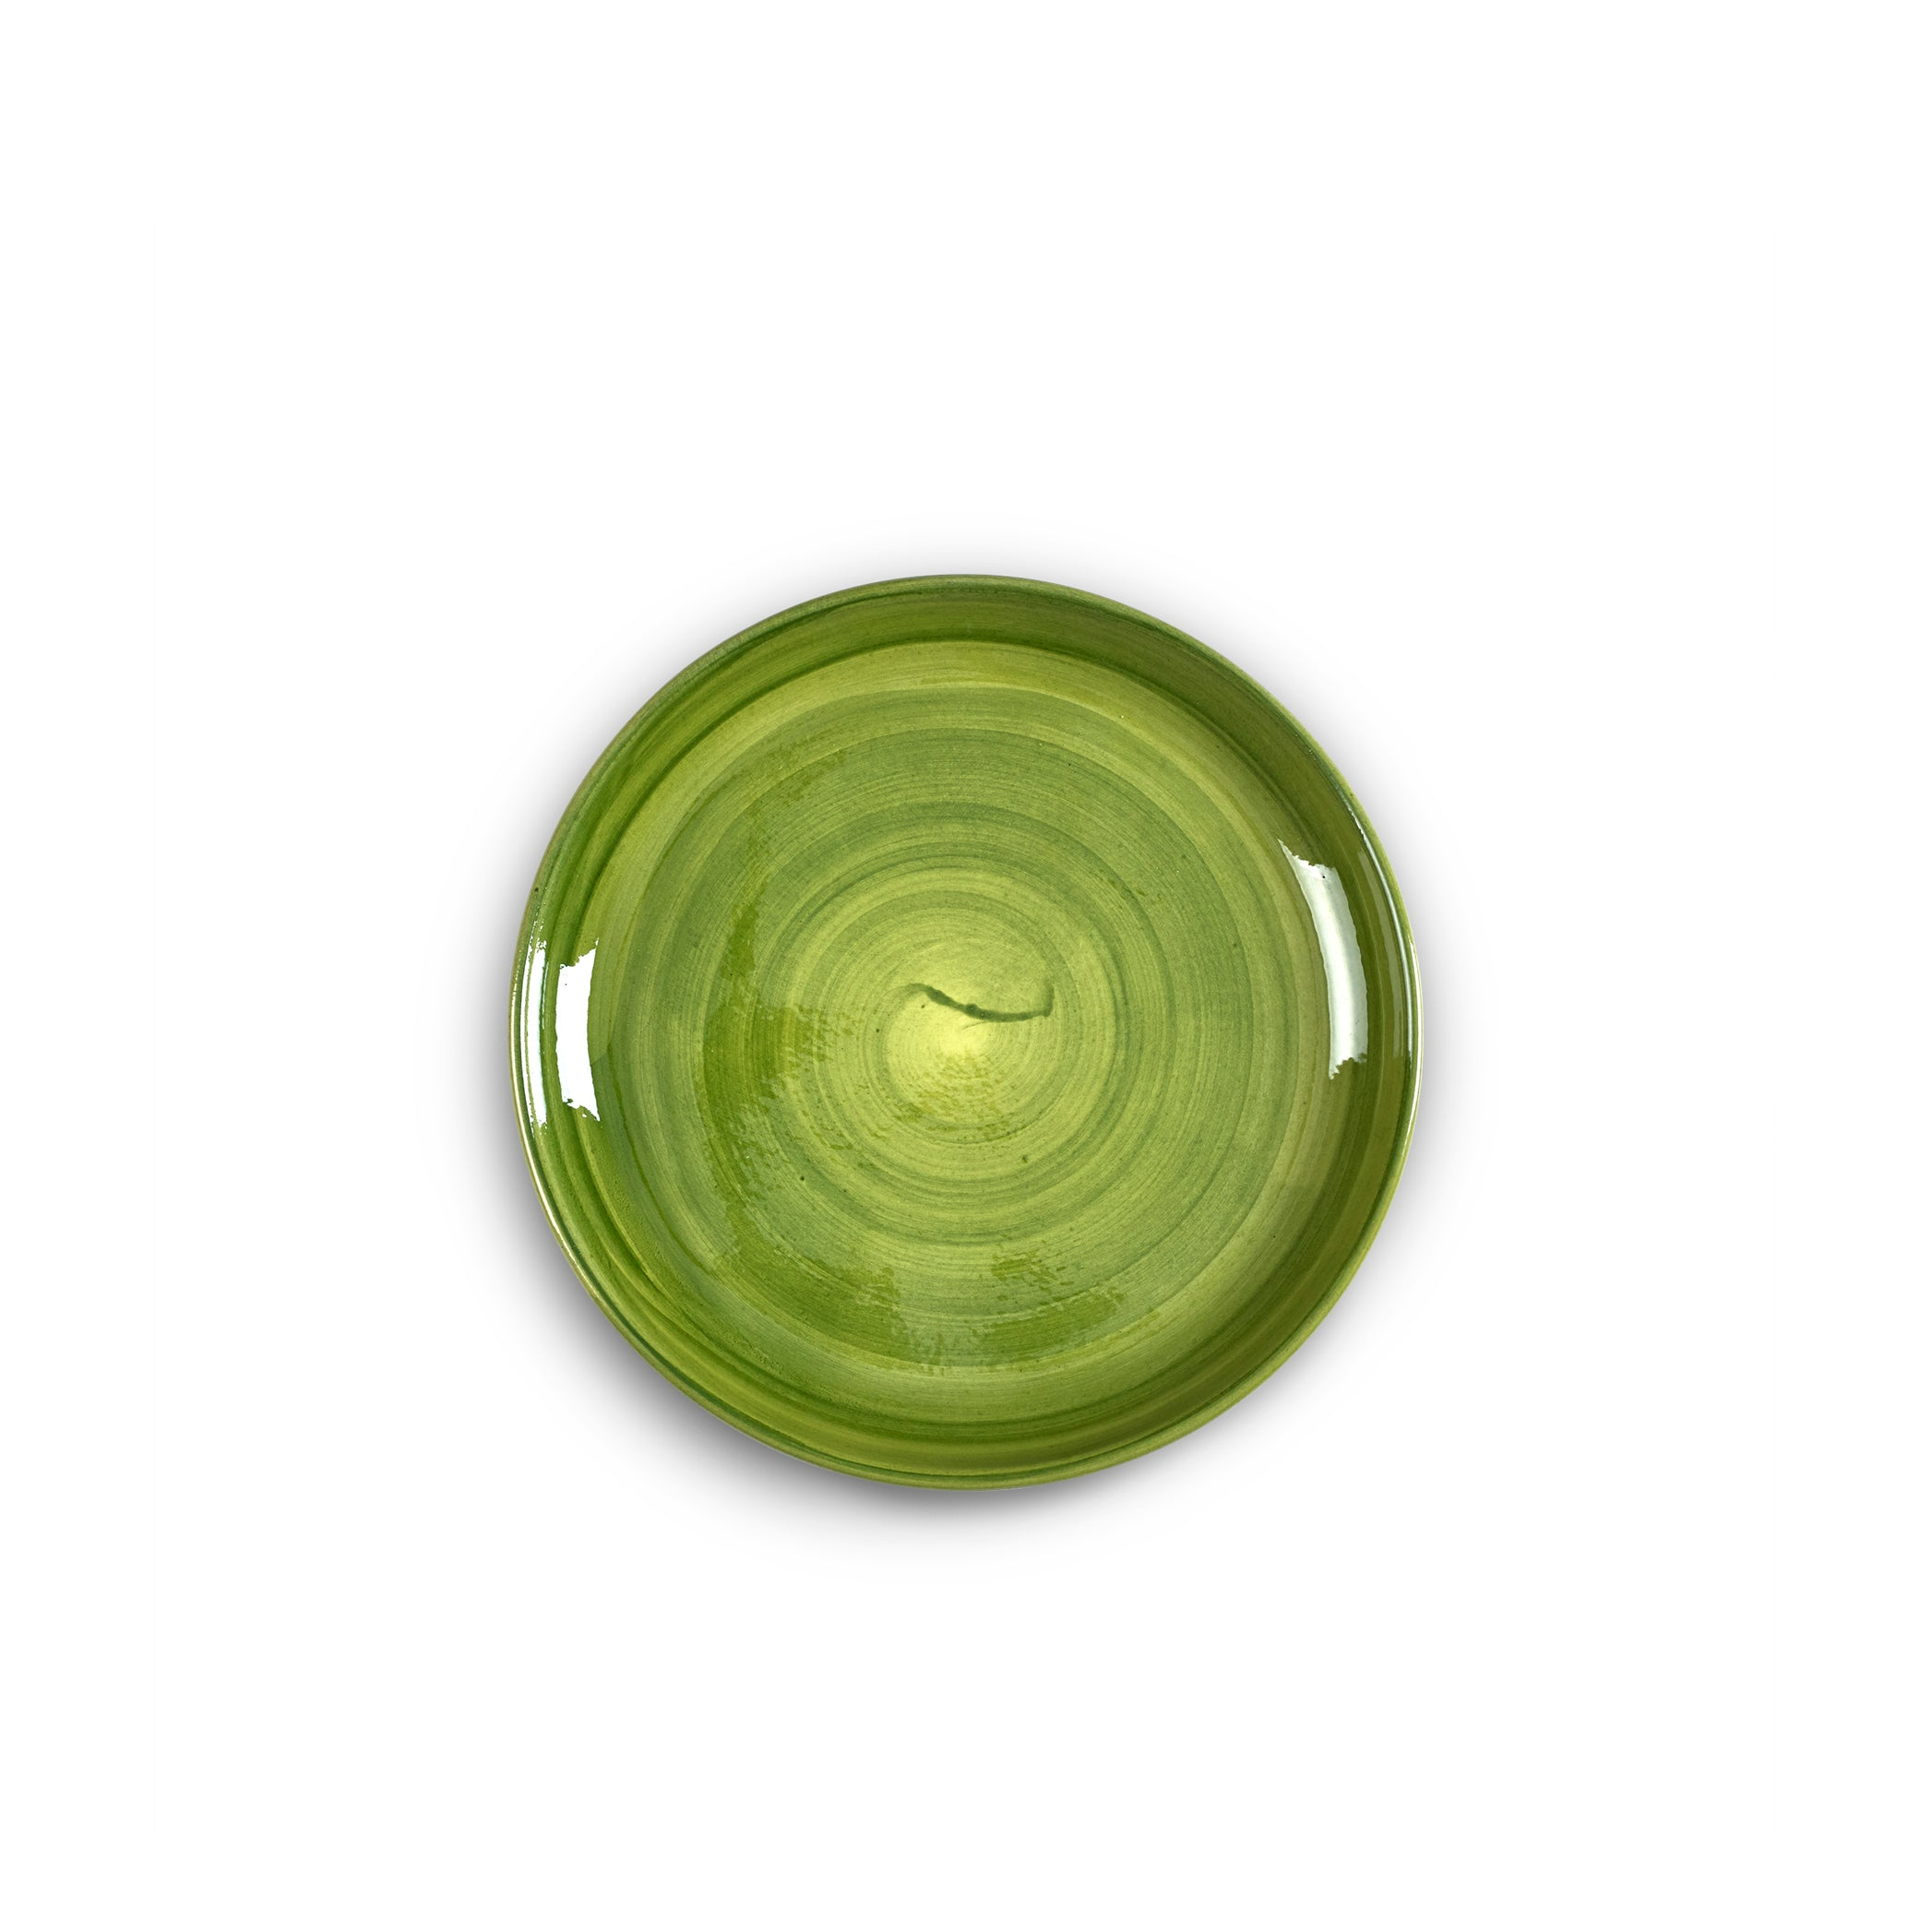 "S&B ""La Couronne"" 20cm Ceramic Side Plate in Green"